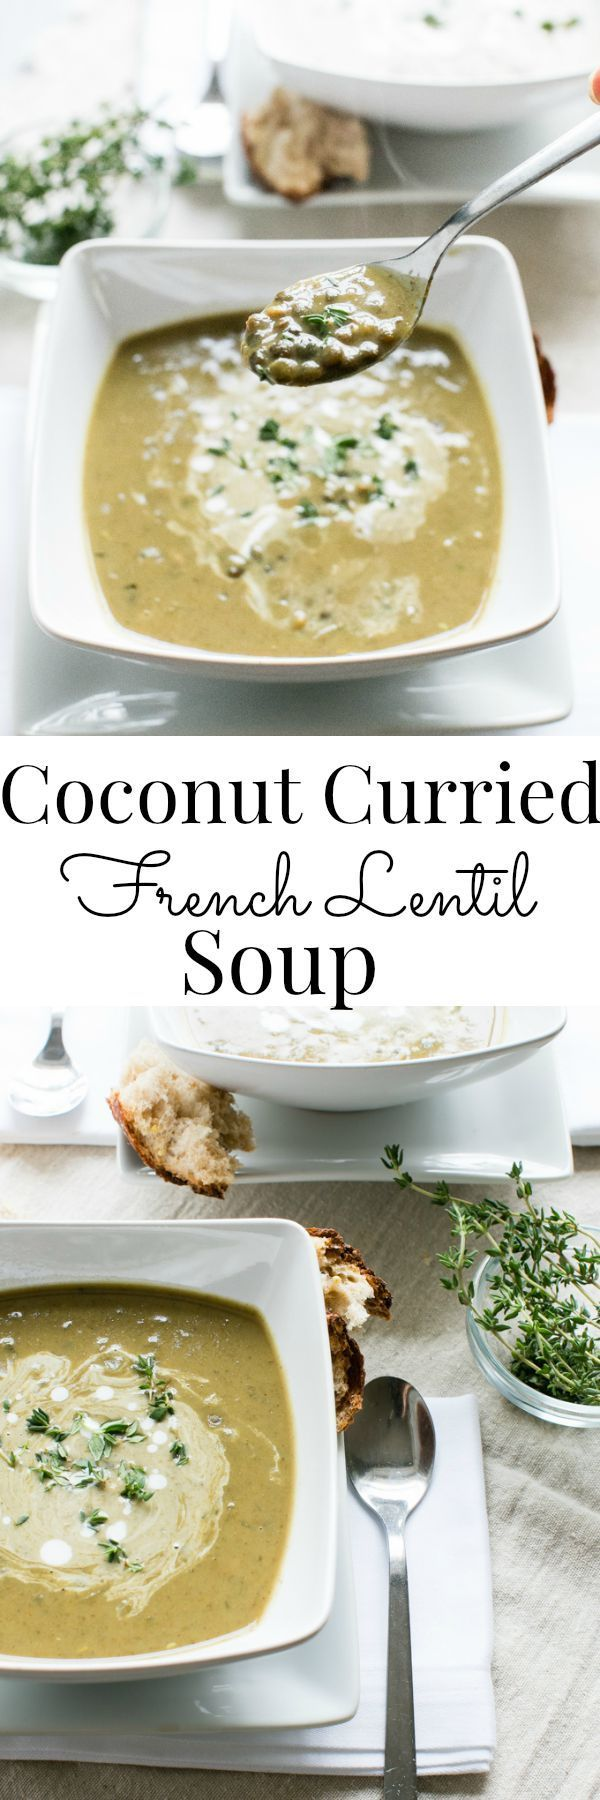 Rich, creamy and quick, this soup is packed with nourishing ingredients. | Vanilla And Bean